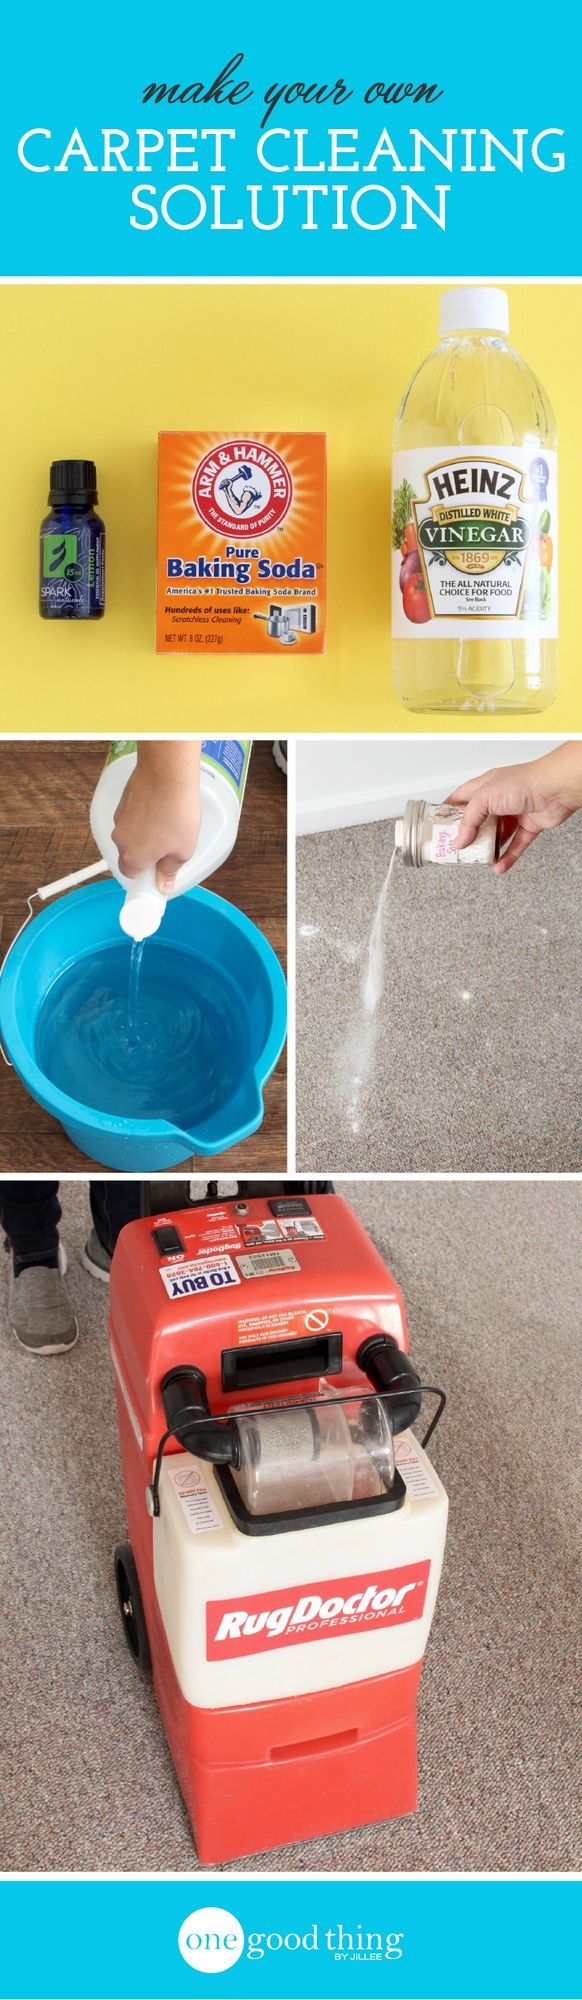 How To Make A Natural Carpet Cleaning Solution One Good